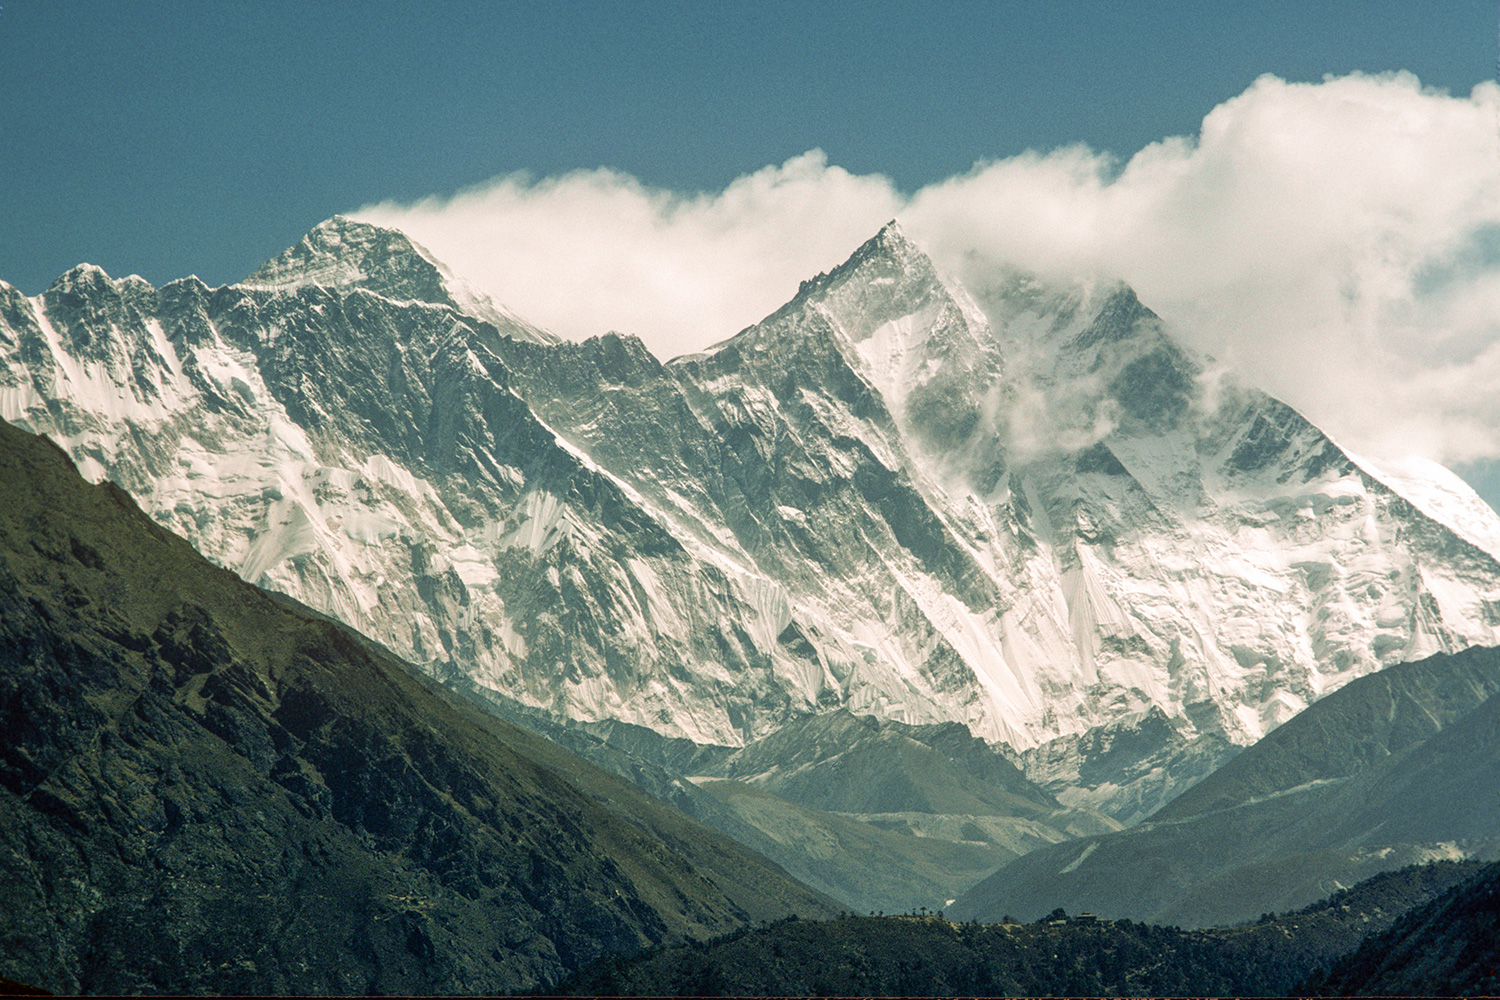 Telephoto from the Khumbu valley above Namche Bazaar, taken in April 1984Canon A1, 135mm, Kodachrome 64